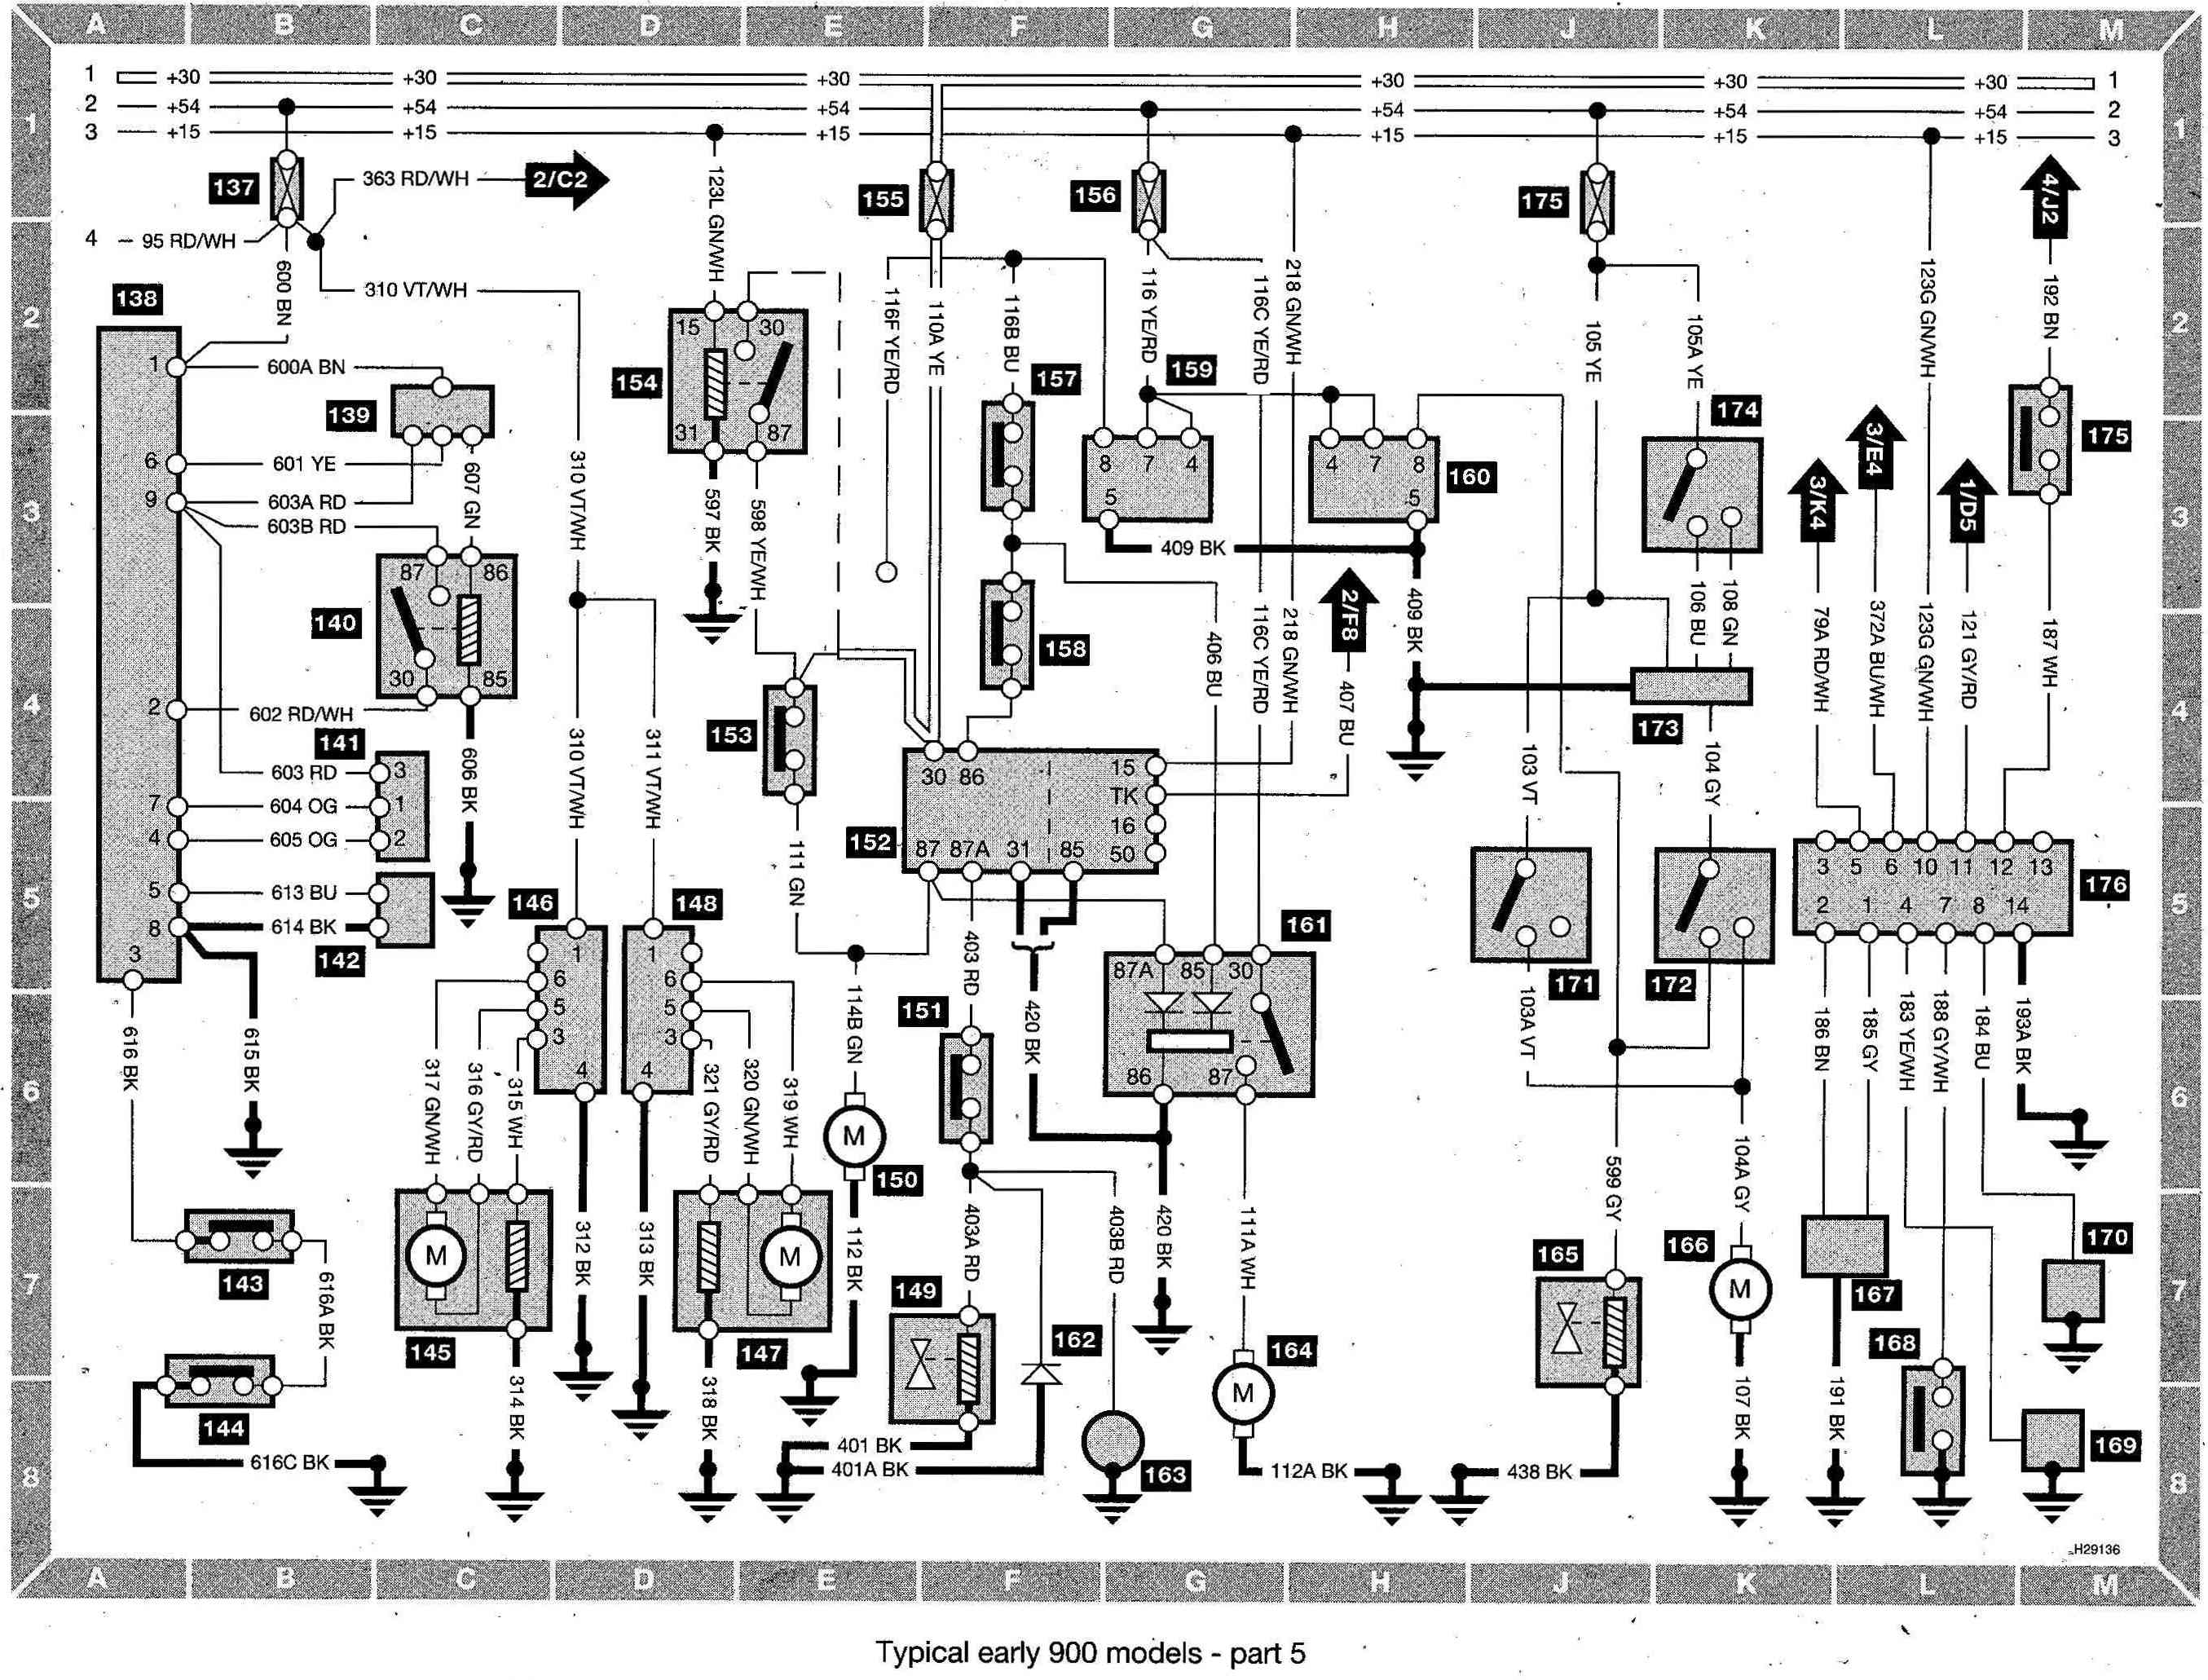 Saab 900 Wiring diagram (early models) part 5 index of saab saab 900 wiring diagram (early models) saab wiring diagram 9 5 at crackthecode.co